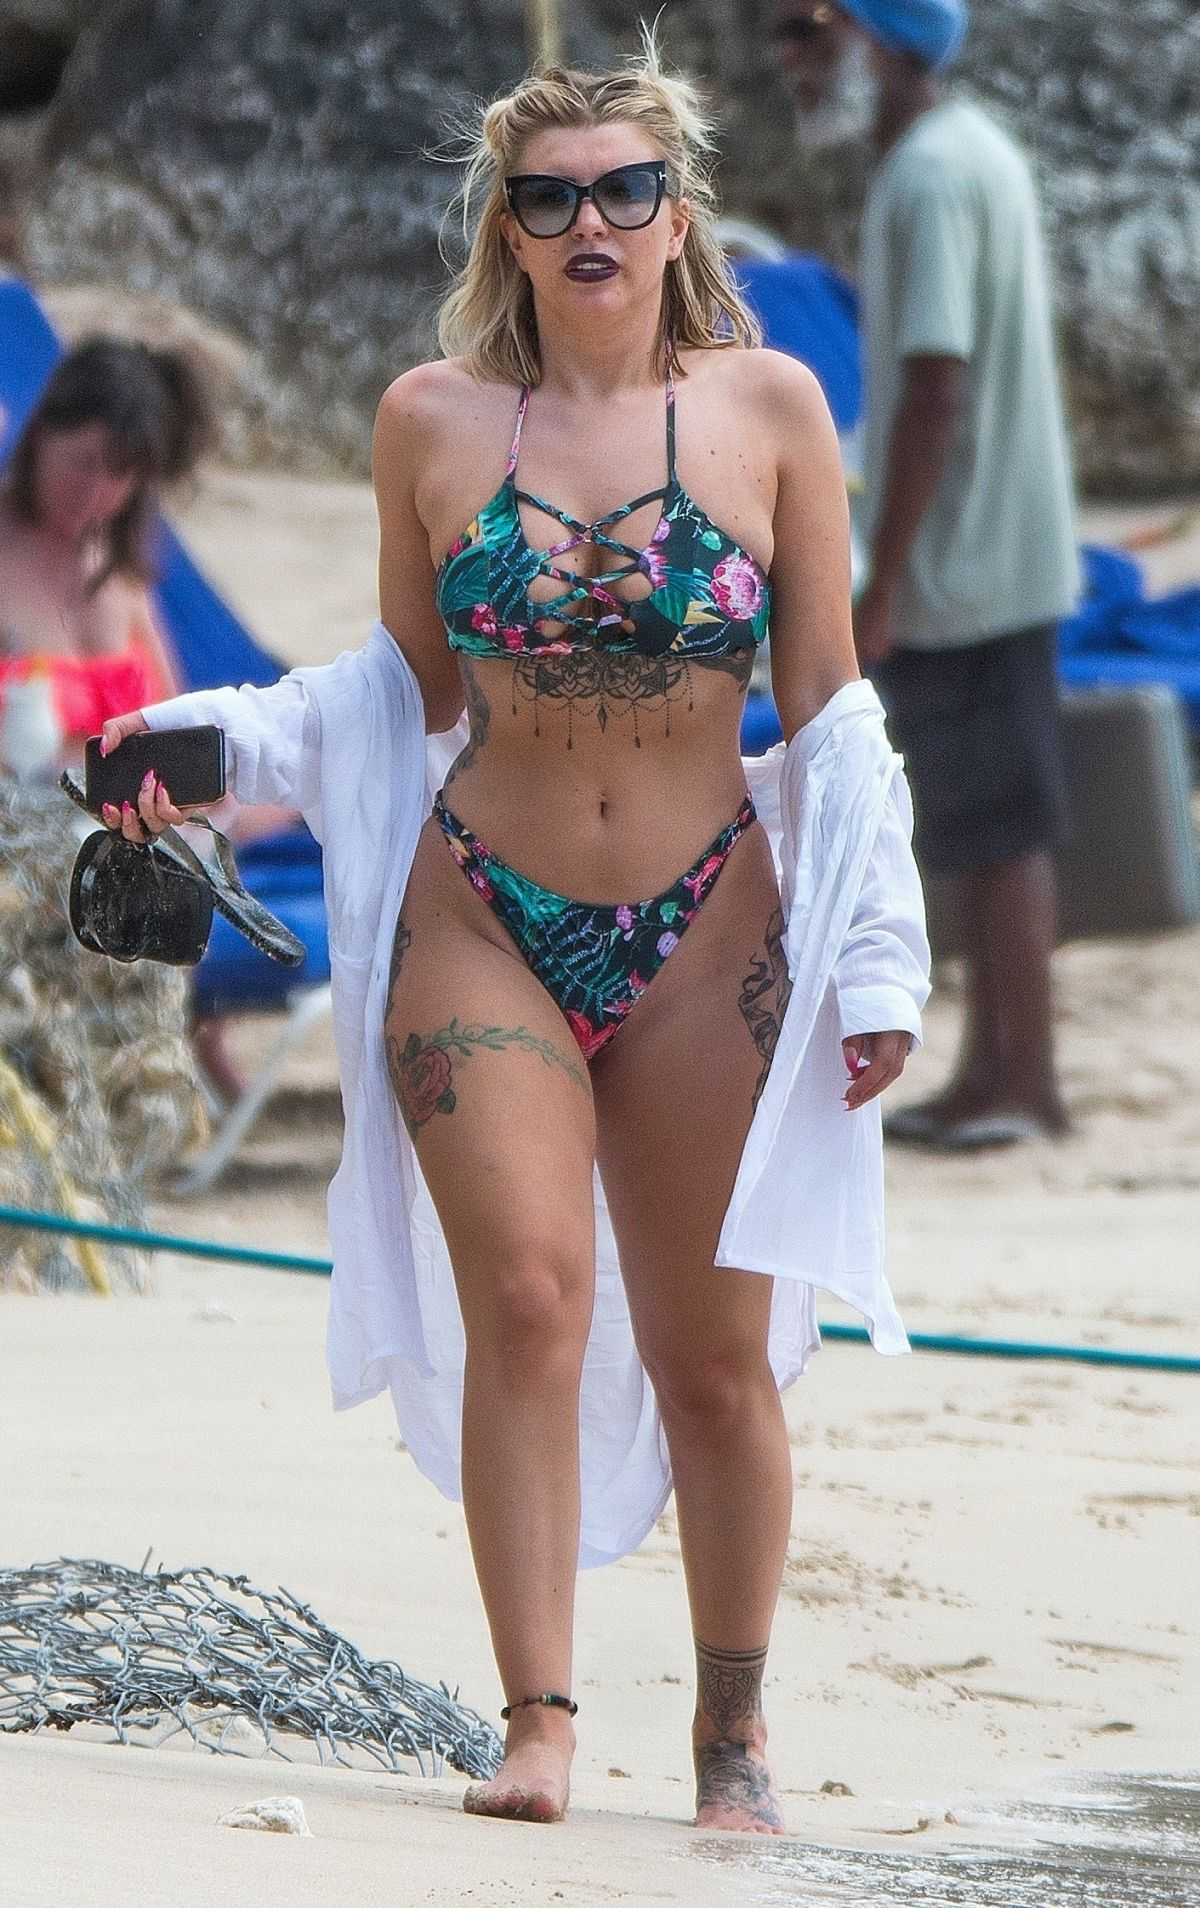 Fotos Olivia Buckland nudes (91 photo), Sexy, Leaked, Boobs, lingerie 2020